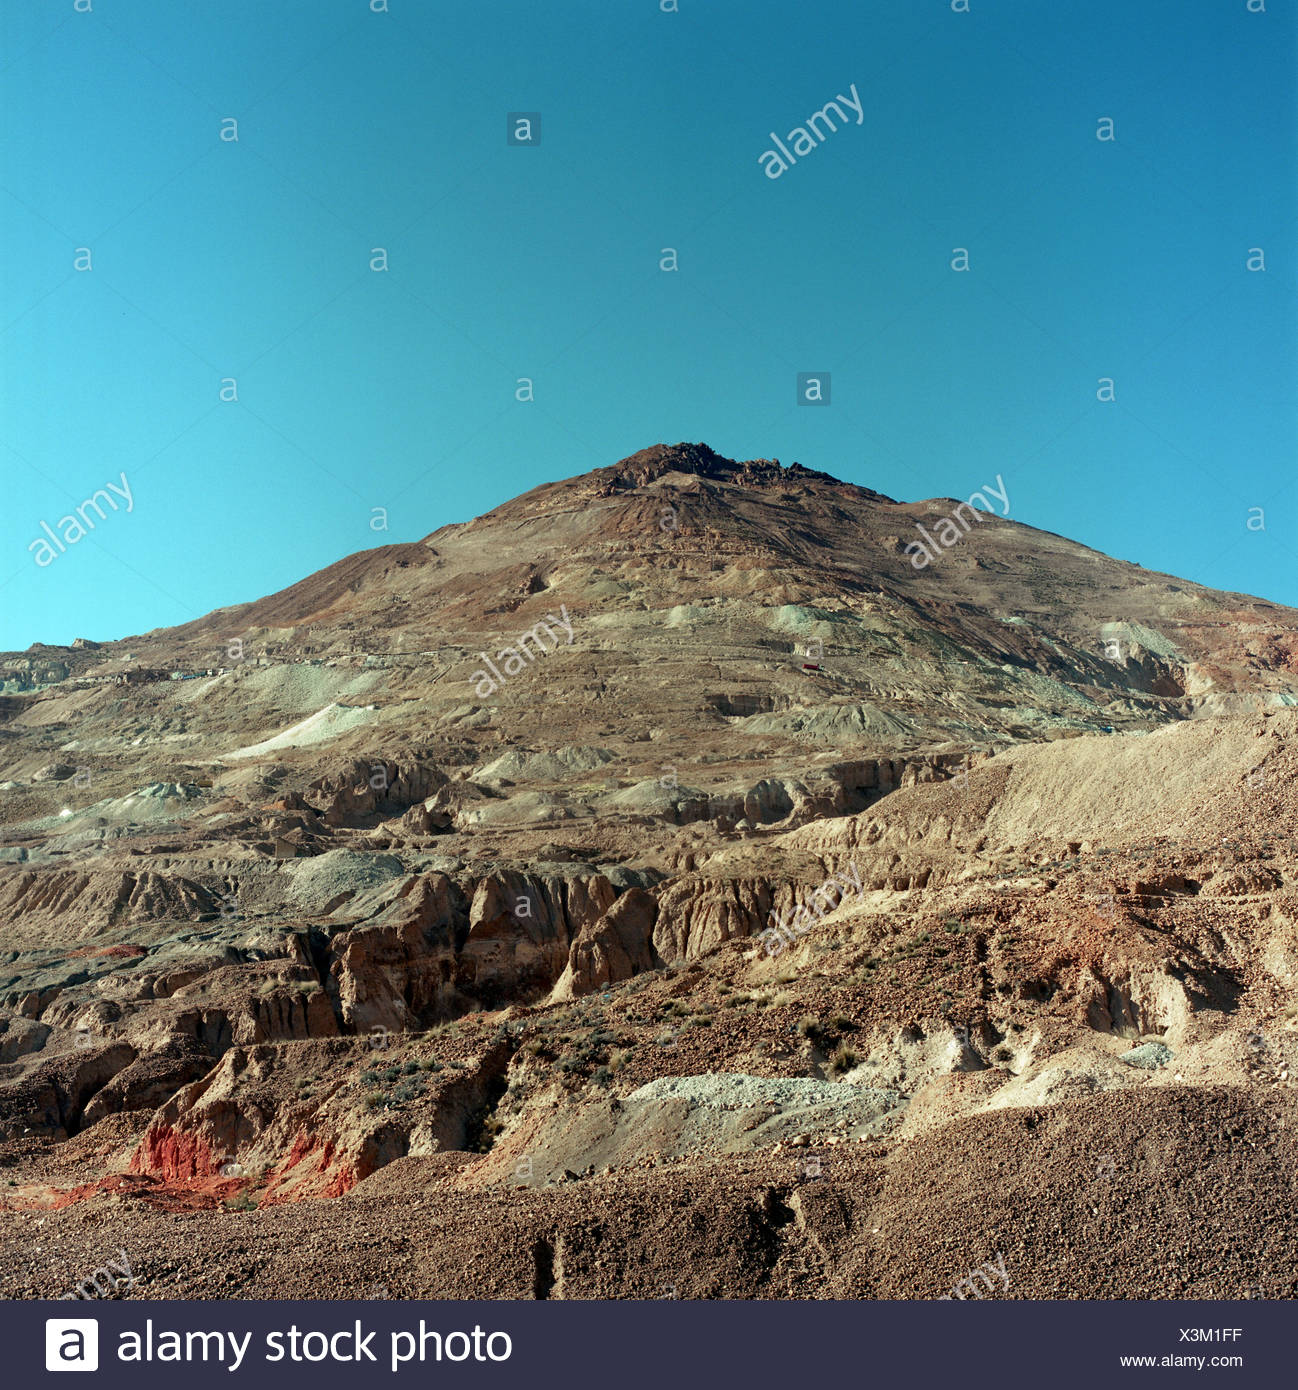 Mountain landscape, Linares, Potosi Department, Bolivia - Stock Image